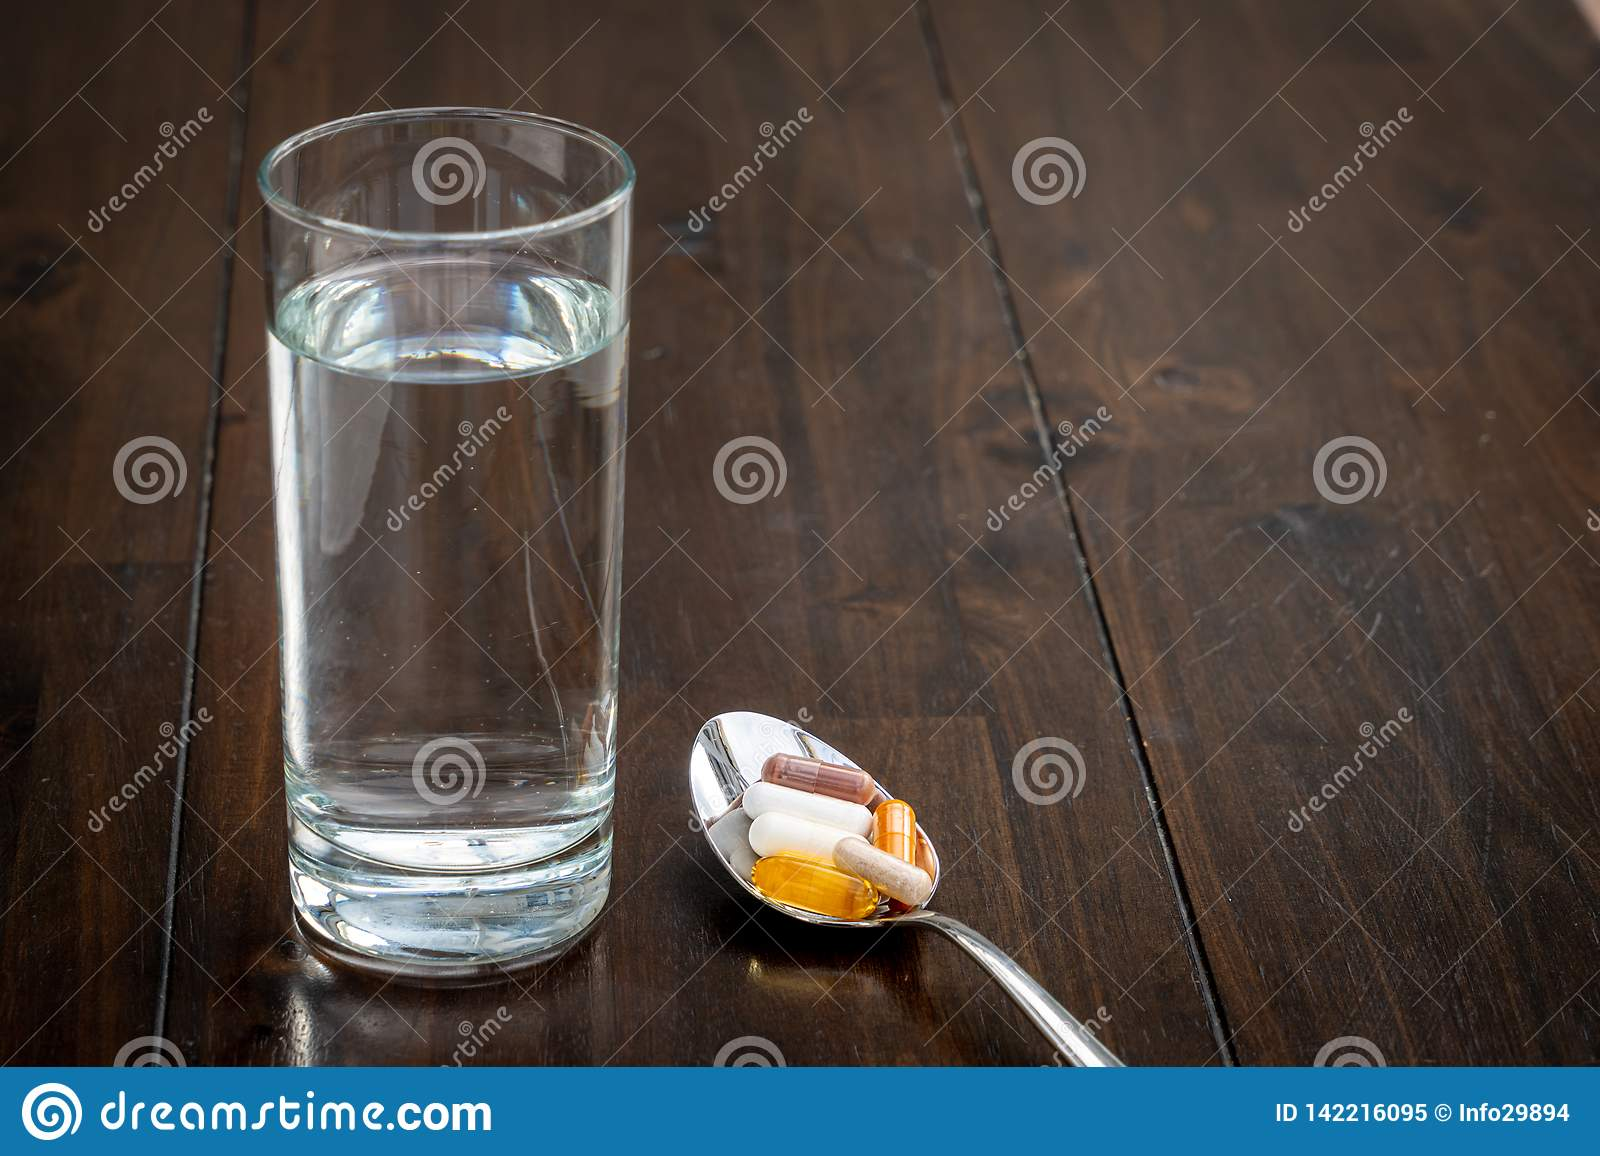 Various pills are on a spoon next to a glass of water on a brown table